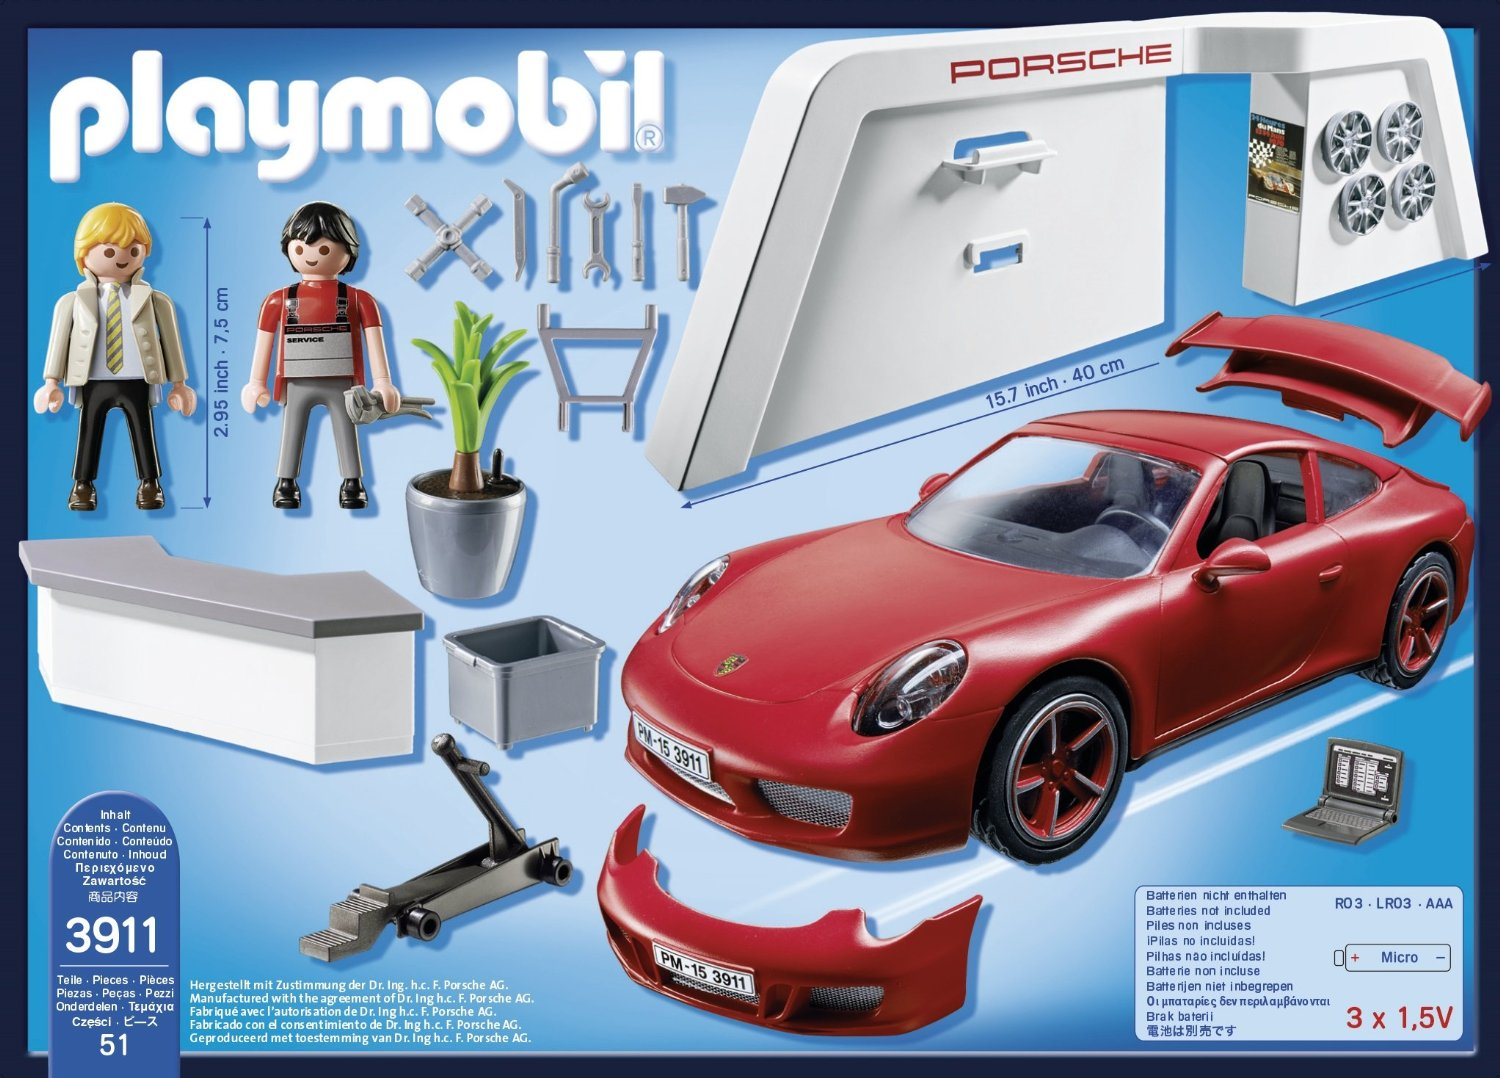 photo porsche playmobil 911 carrera s 3911 porsche 911 playmobil 3911 02. Black Bedroom Furniture Sets. Home Design Ideas